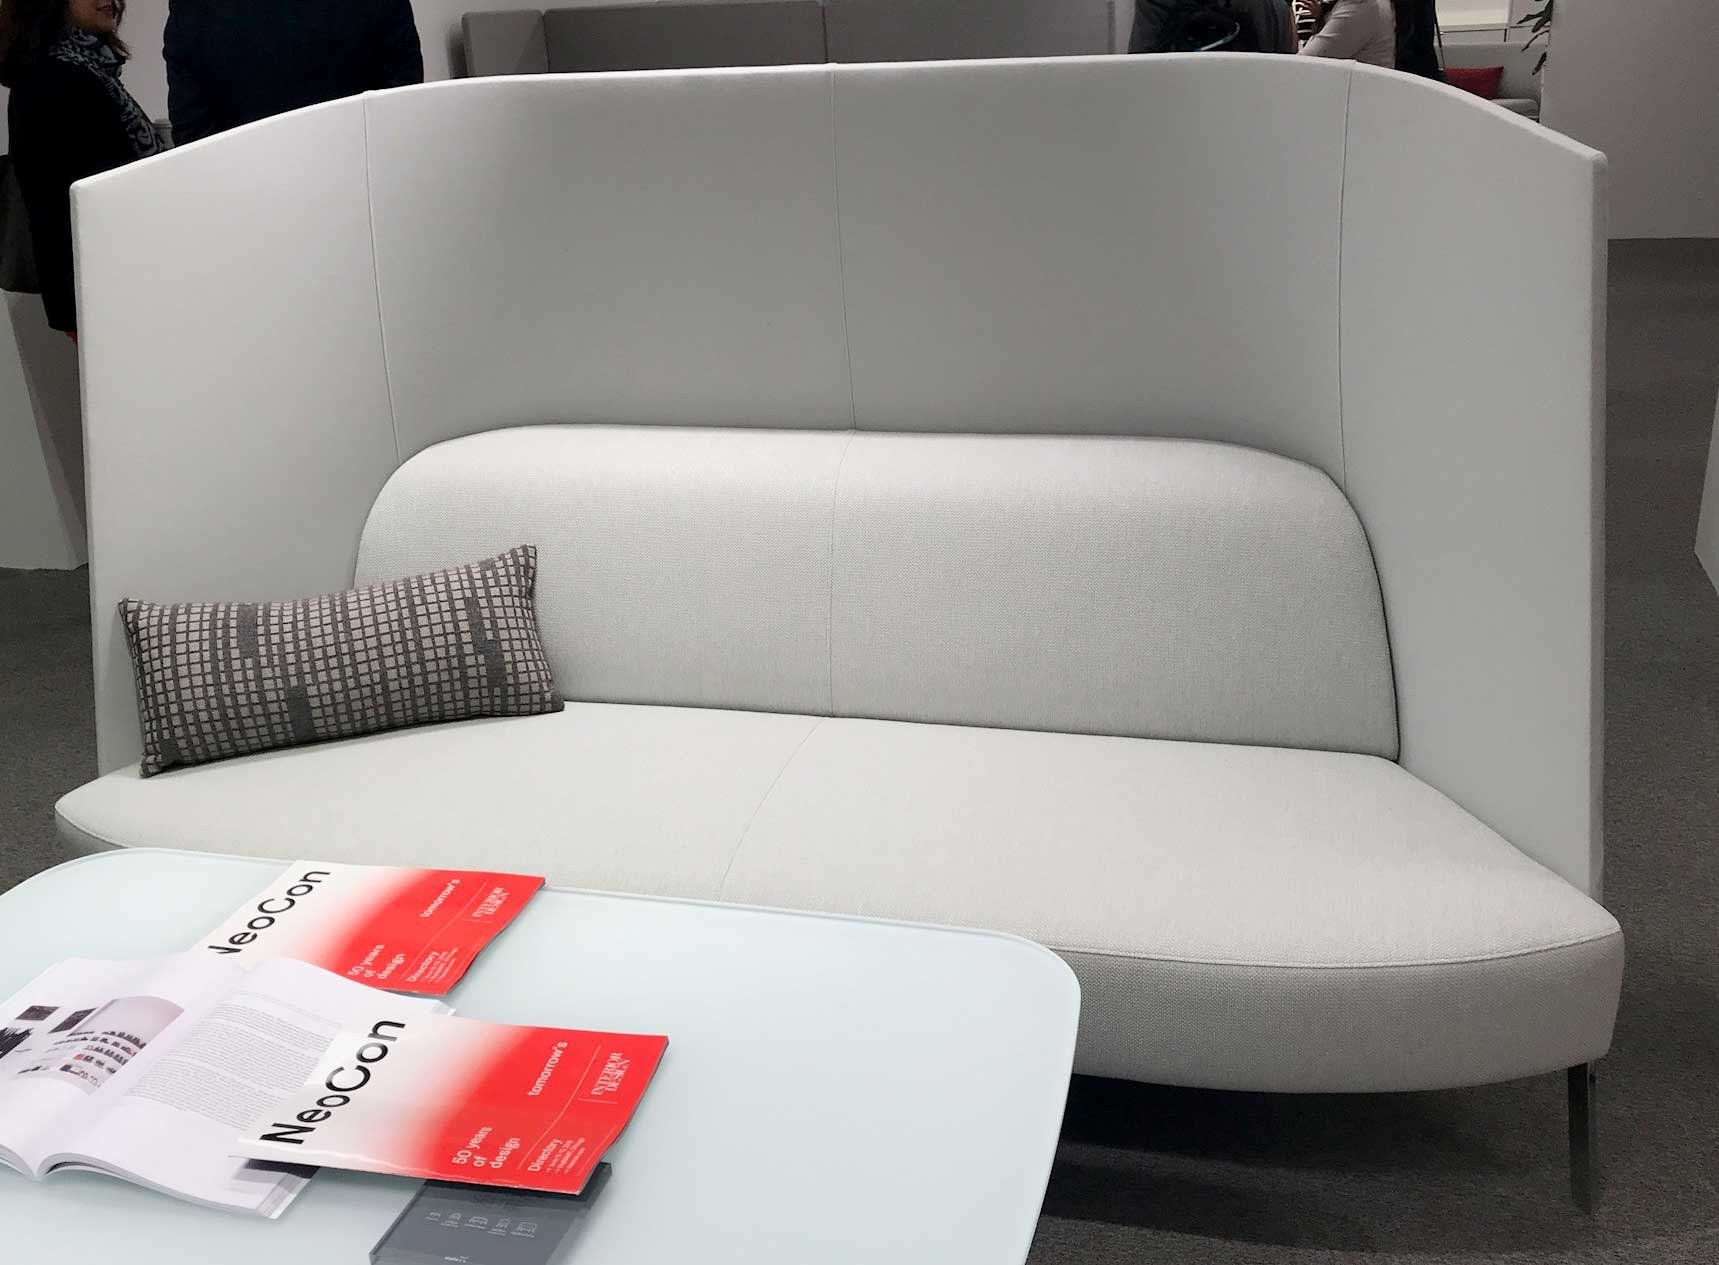 5 Trends We Saw at NeoCon 2018 from Unisource Solutions - 5. pods